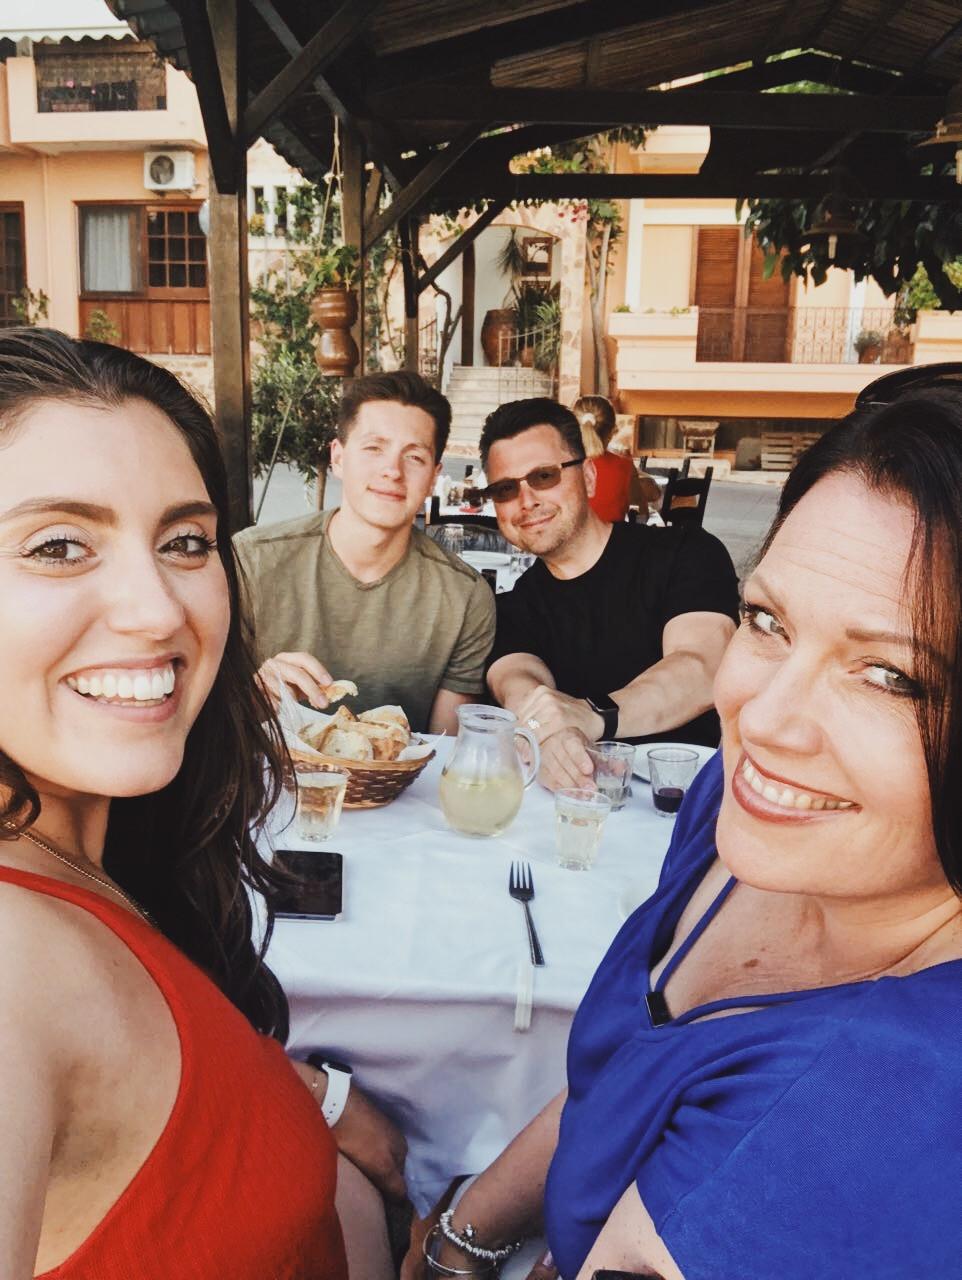 Marika smiling and taking a selfie of her and her travel companions enjoying a meal